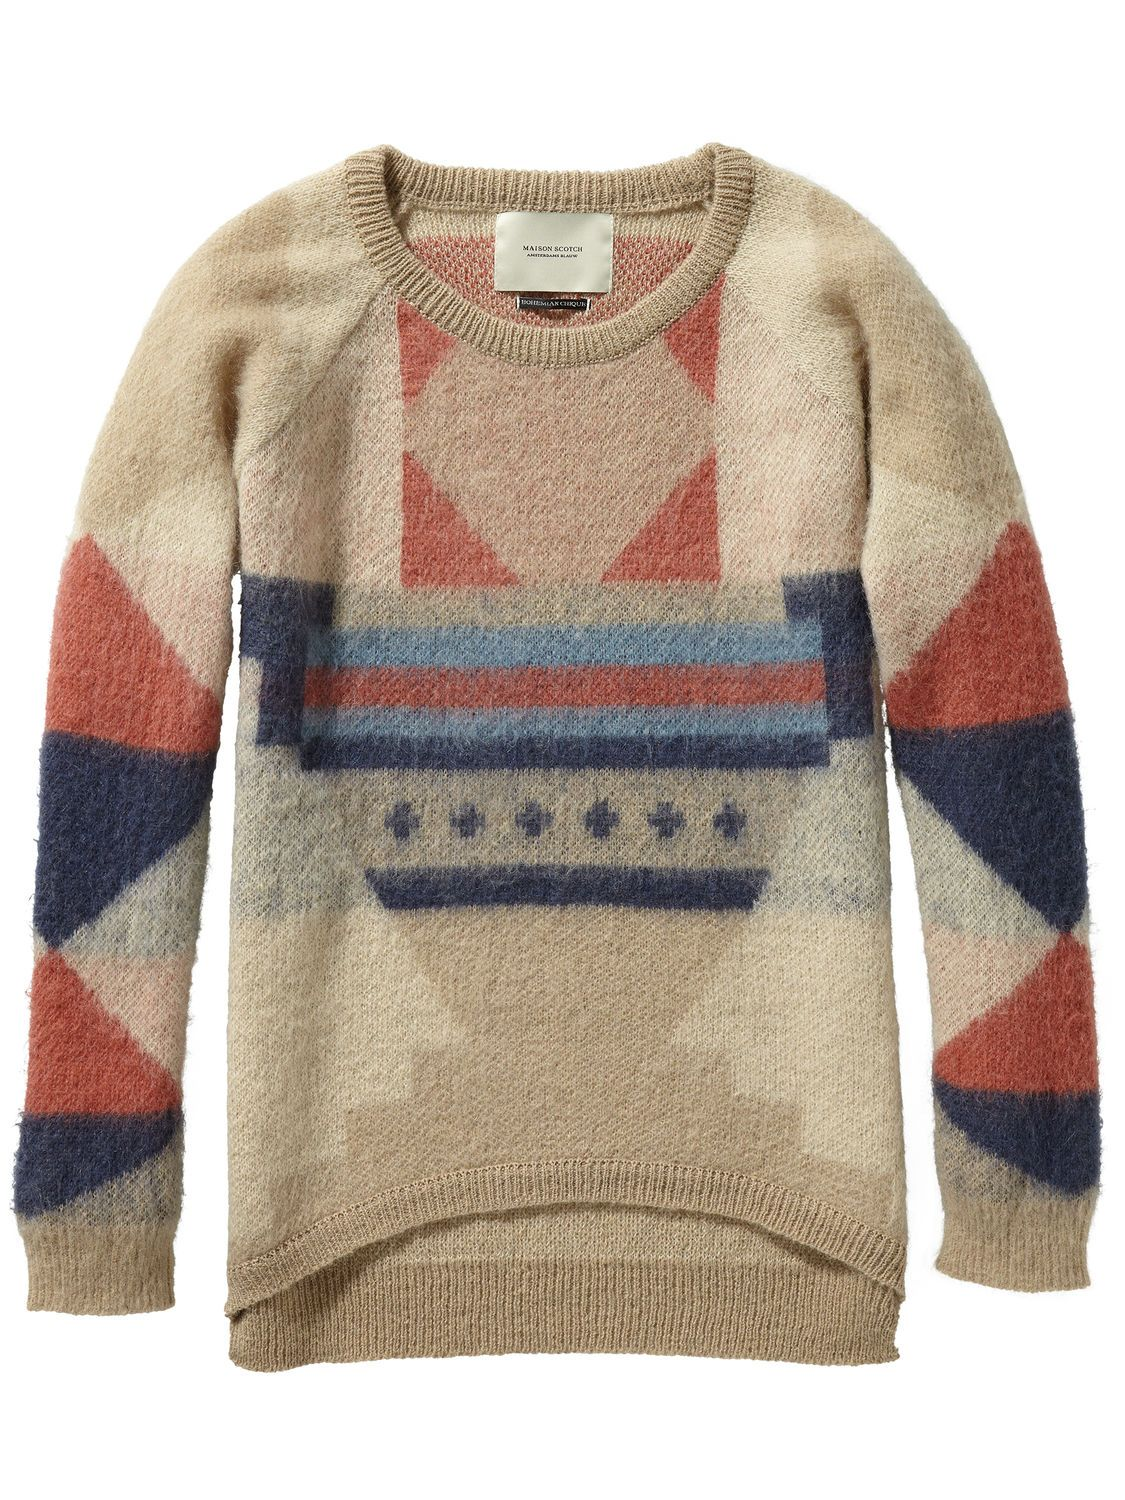 Womens Basic Cardigan with Intarsia Jumper Scotch & Soda Cheap Sale For Nice Shopping Online Clearance Free Shipping Shop acfHFs